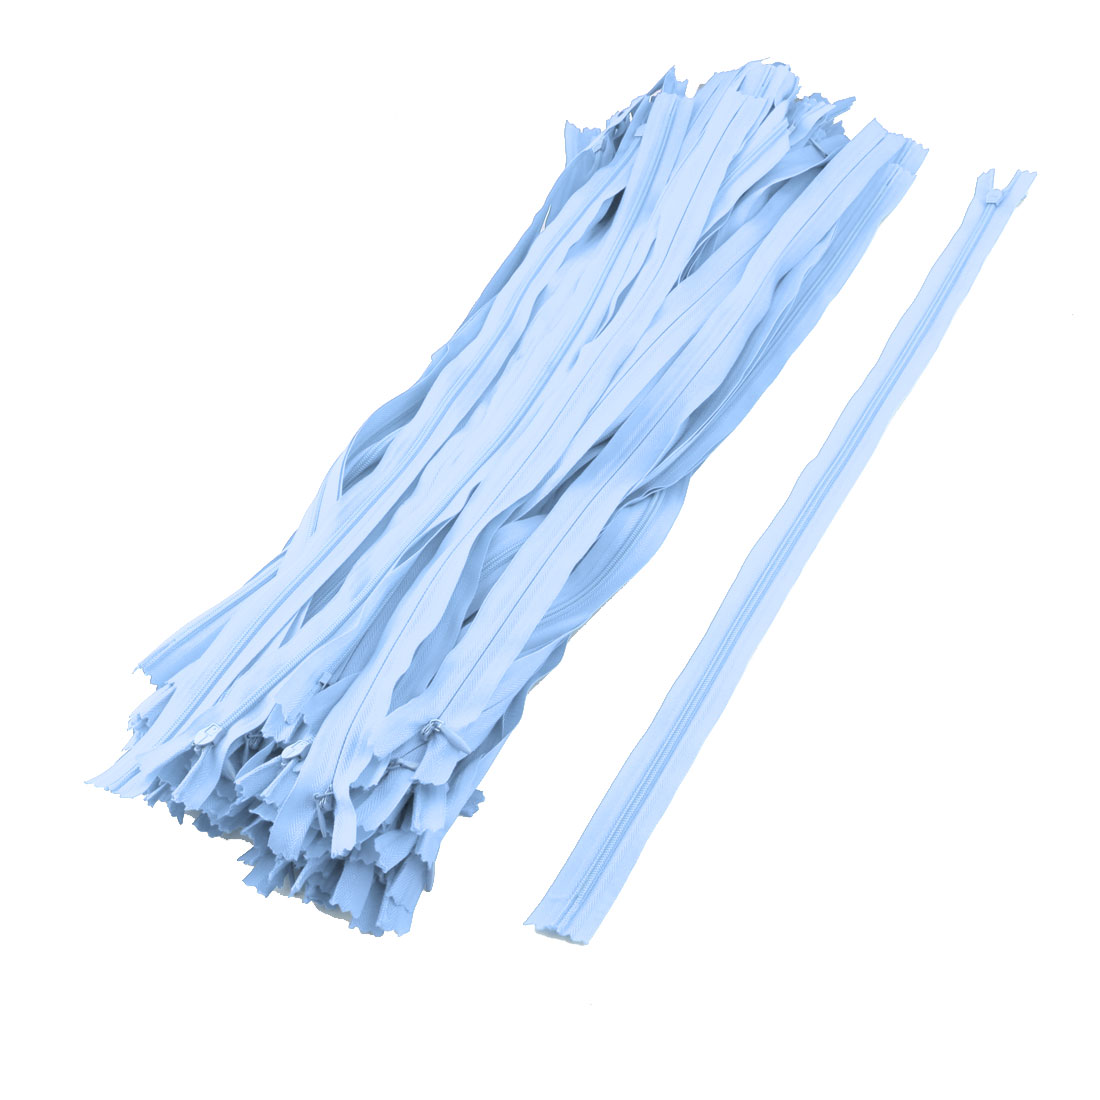 Household Nylon Invisible Zipper Sewing Tool Blue 20 Inch Length 100pcs